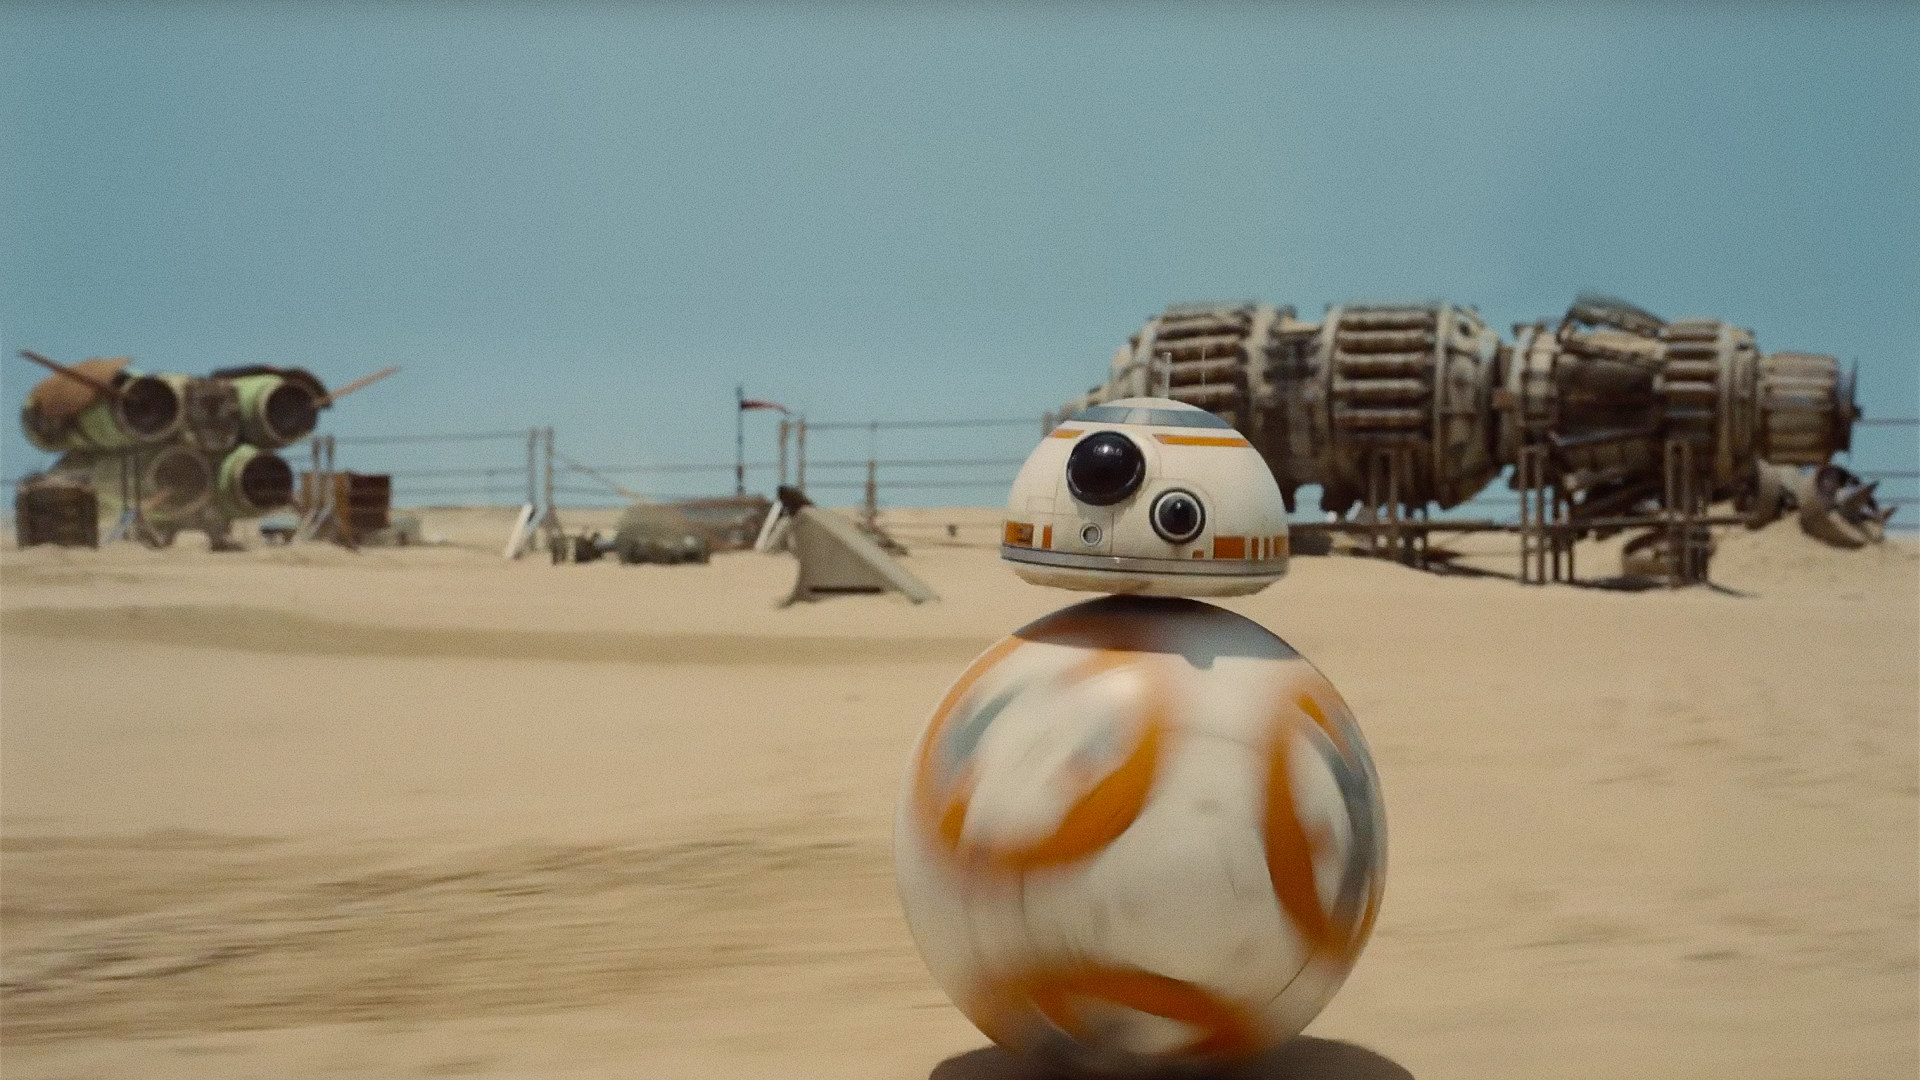 bb8 wallpaper hd - photo #16